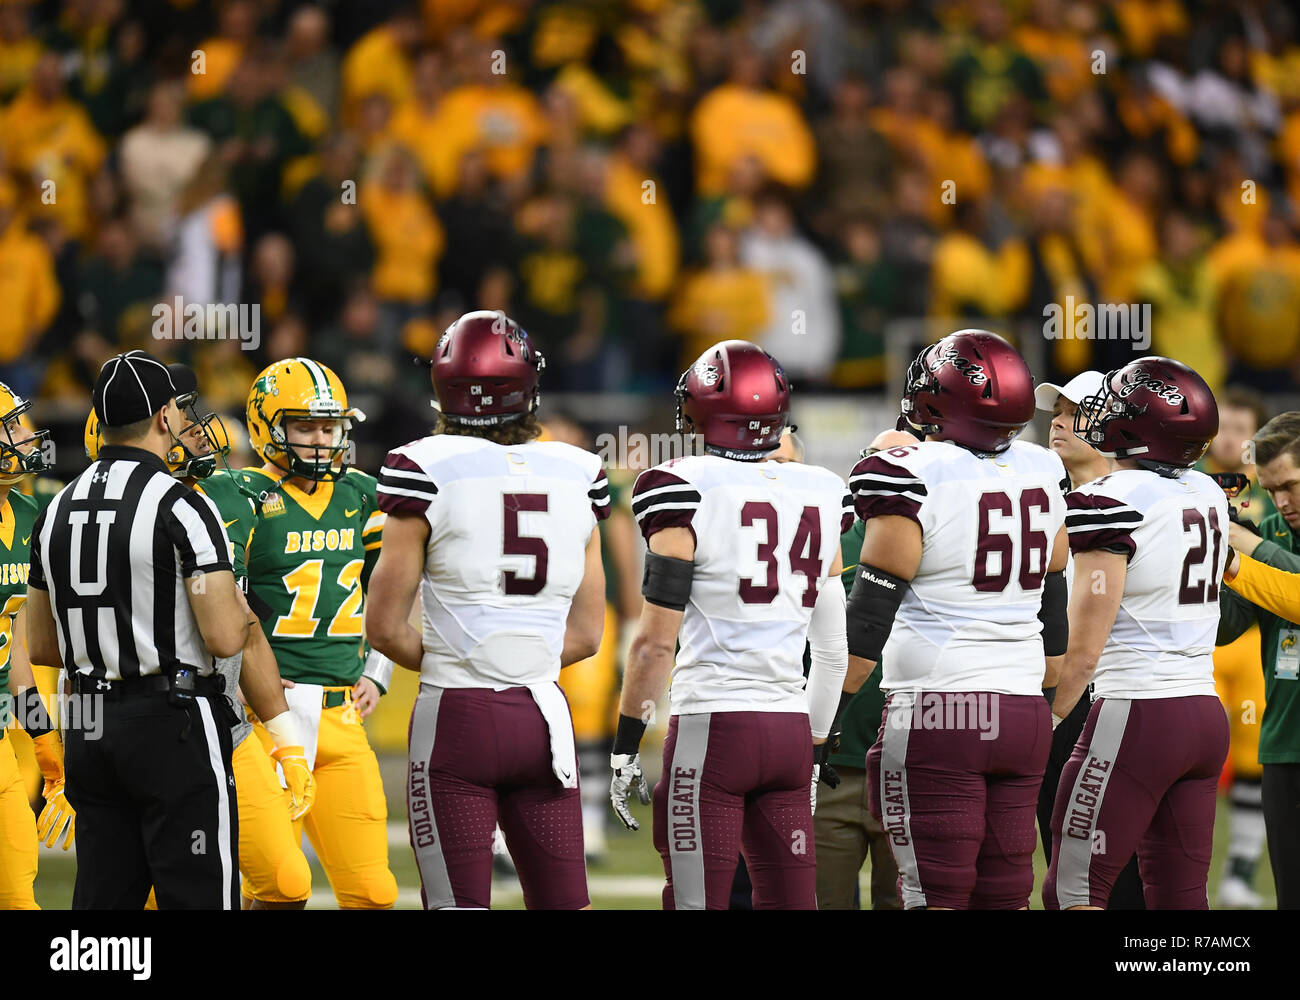 December 8, 2018: Players gather for the coin flip before a NCAA FCS playoff quarter final football game between the Colgate University Raiders and the North Dakota State Bison at the Fargo Dome, Fargo, North Dakota. North Dakota State defeated Colgate 35-0. Photo by Russell Hons - Stock Image